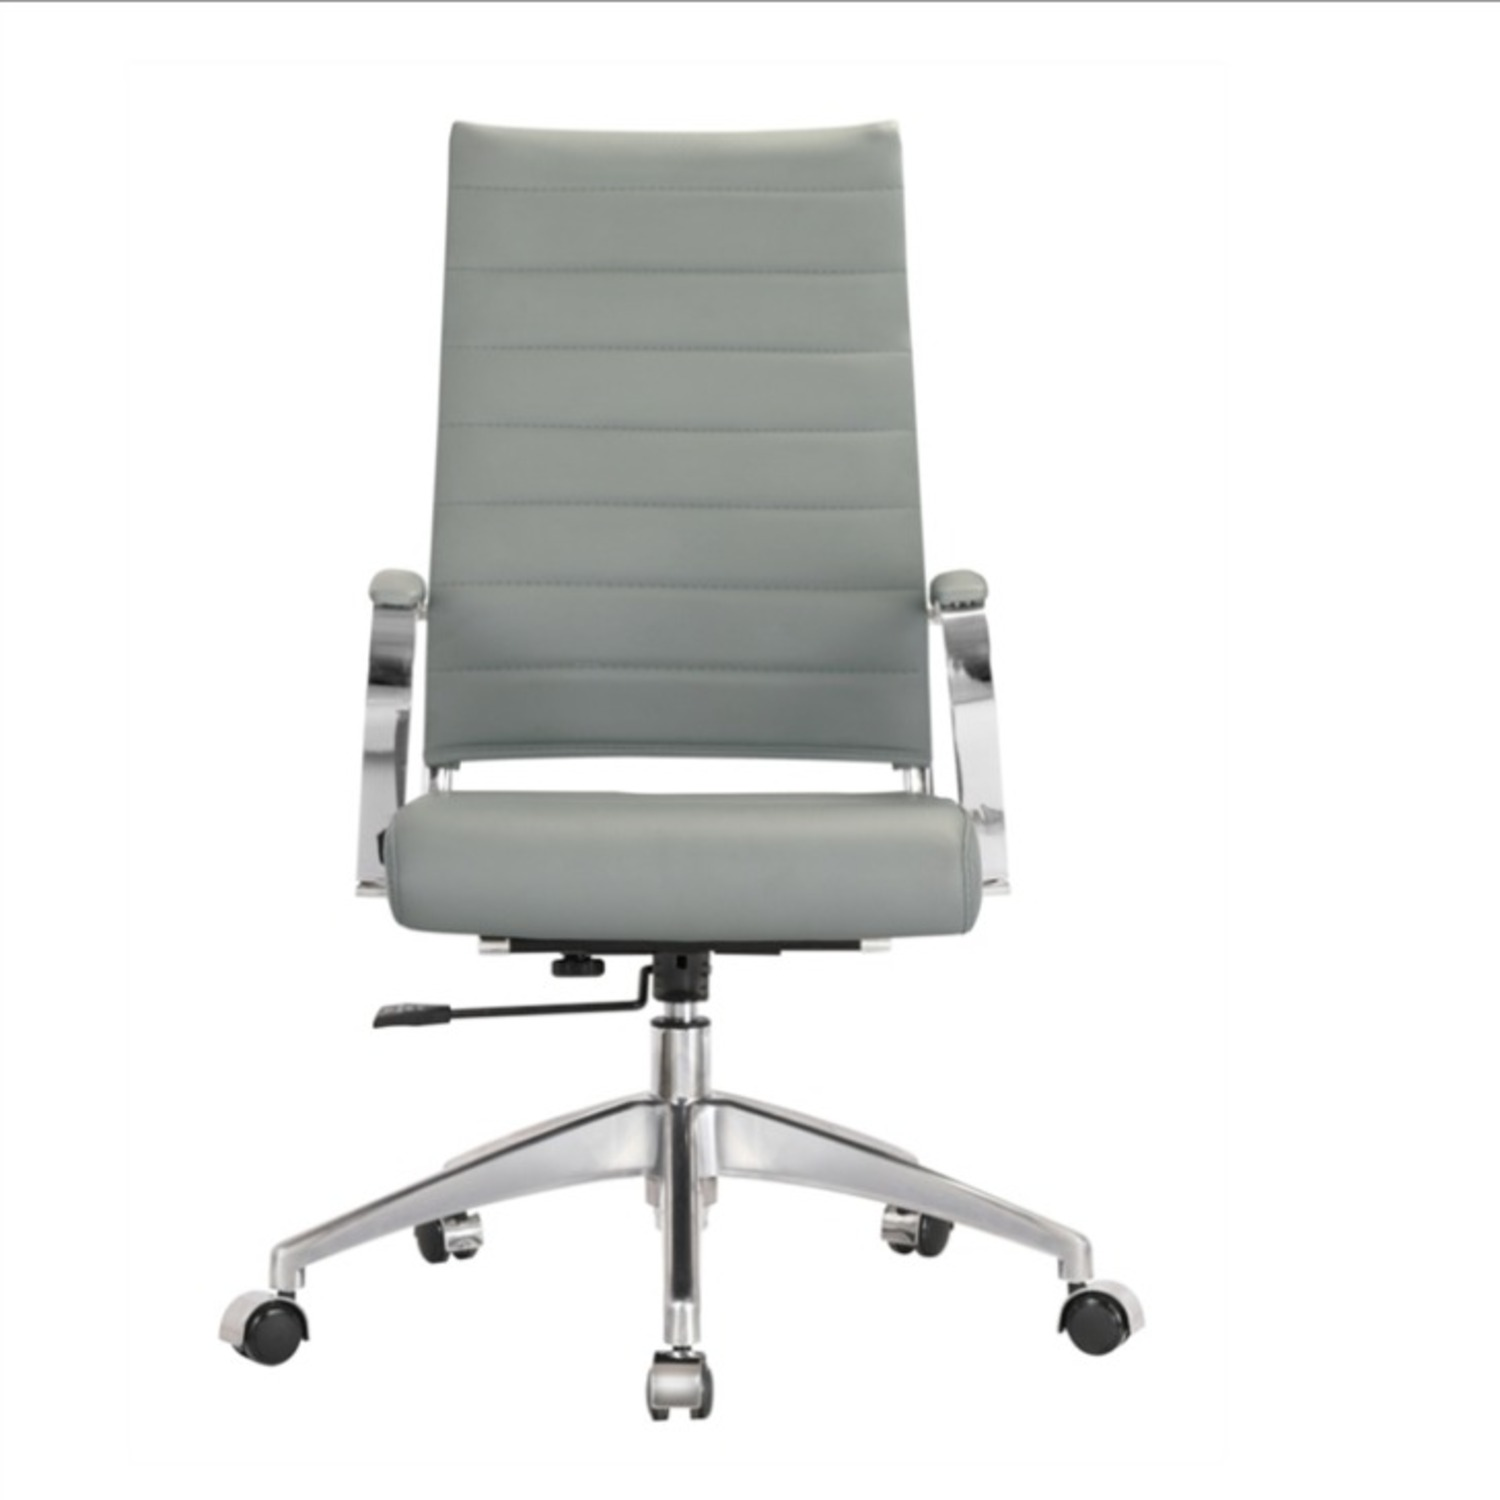 Office Chair W/ High Back Seat In Grey Leather - image-1